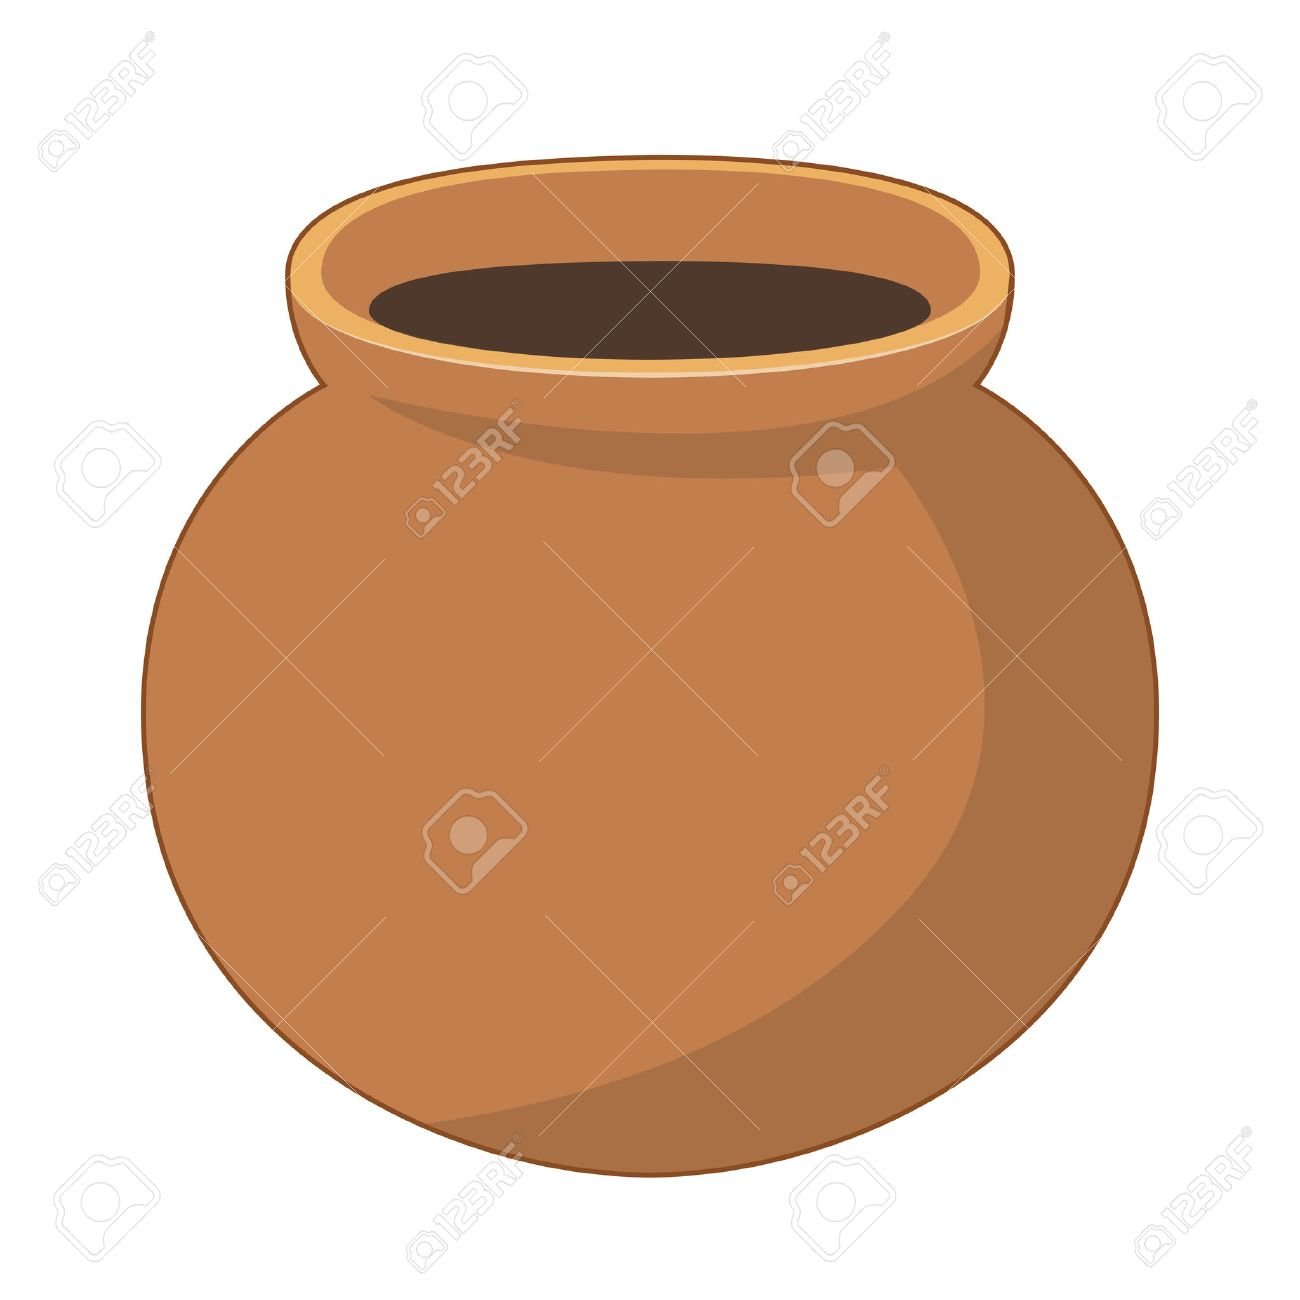 clay pot isolated illustration on white background royalty free rh 123rf com Ancient Pots Earthen Pot for Cooking